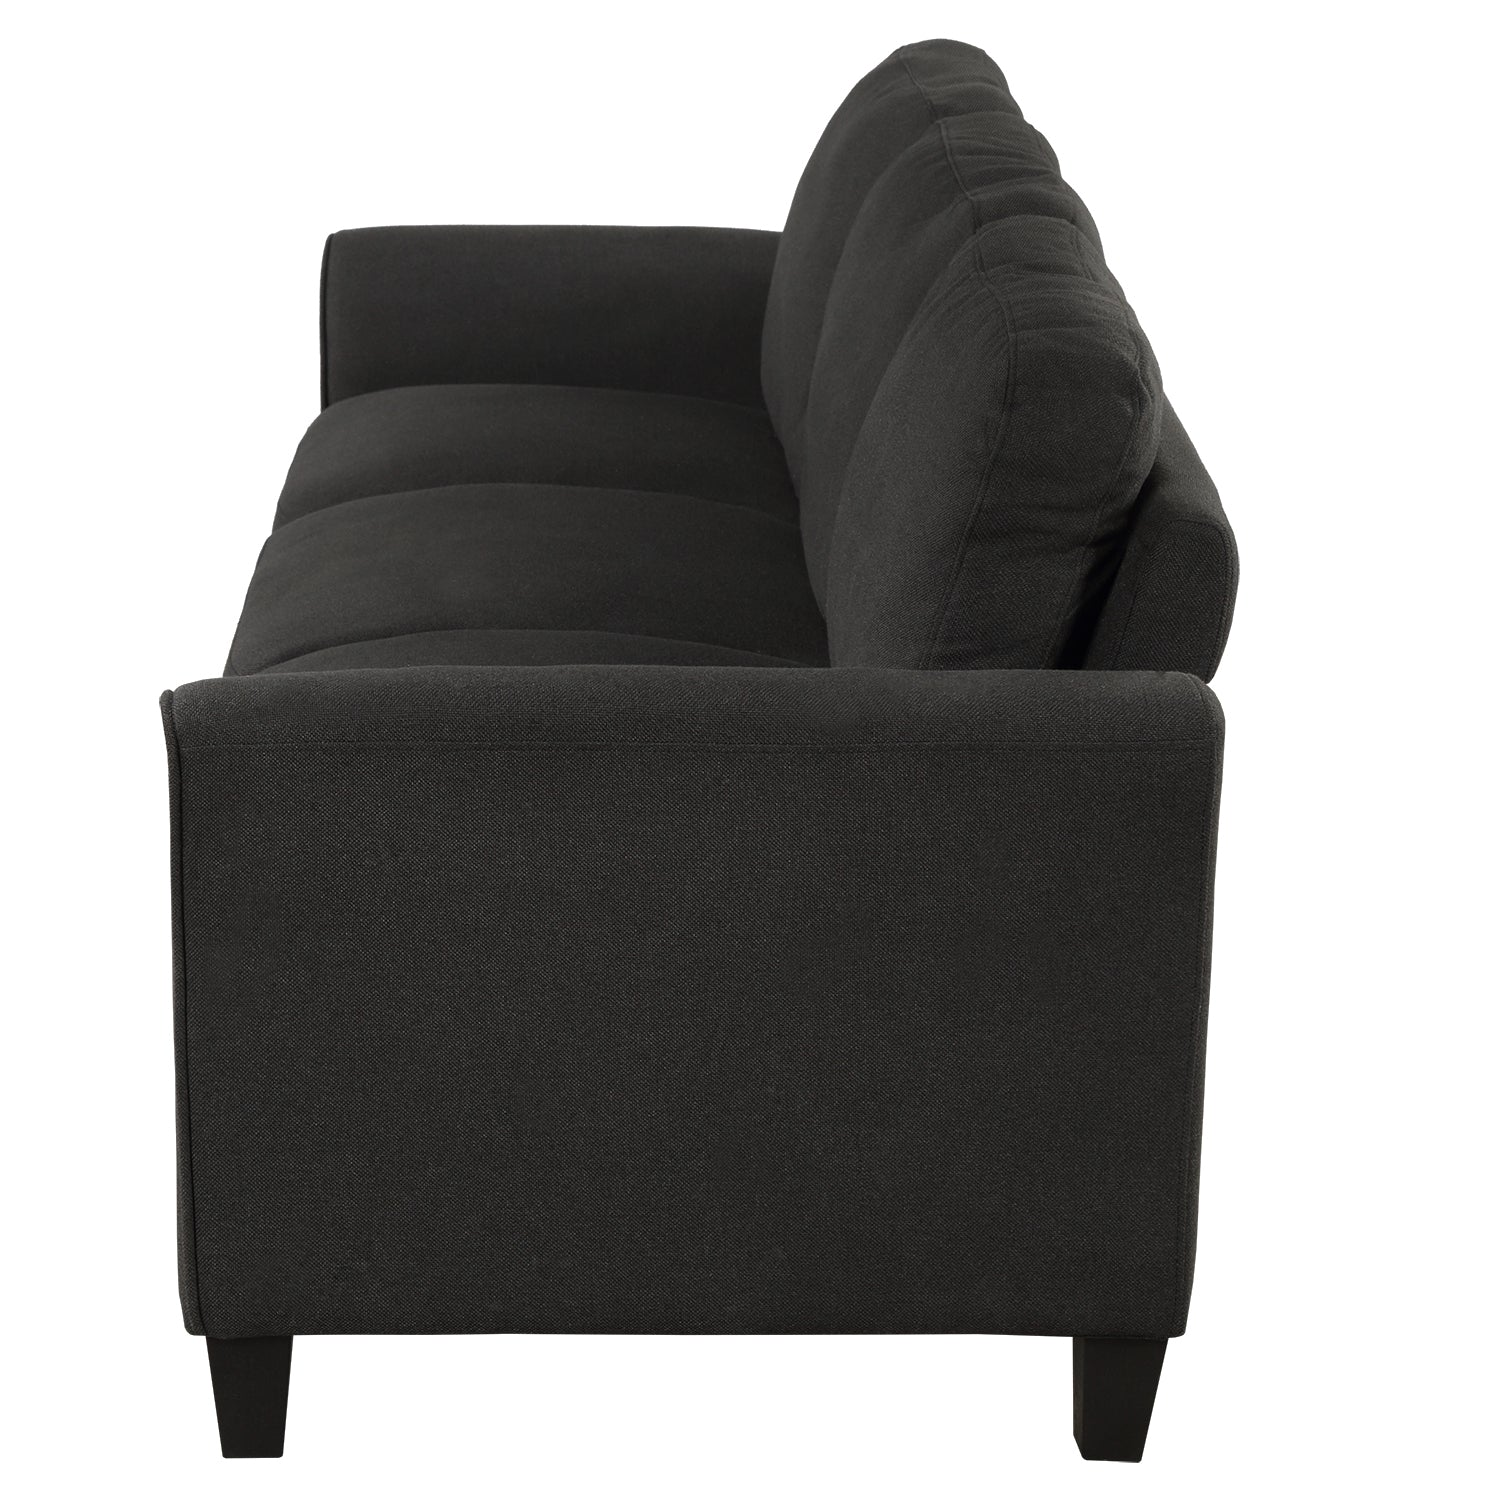 Nordic 3-Seat Linen Fabric Sofa For Living Room